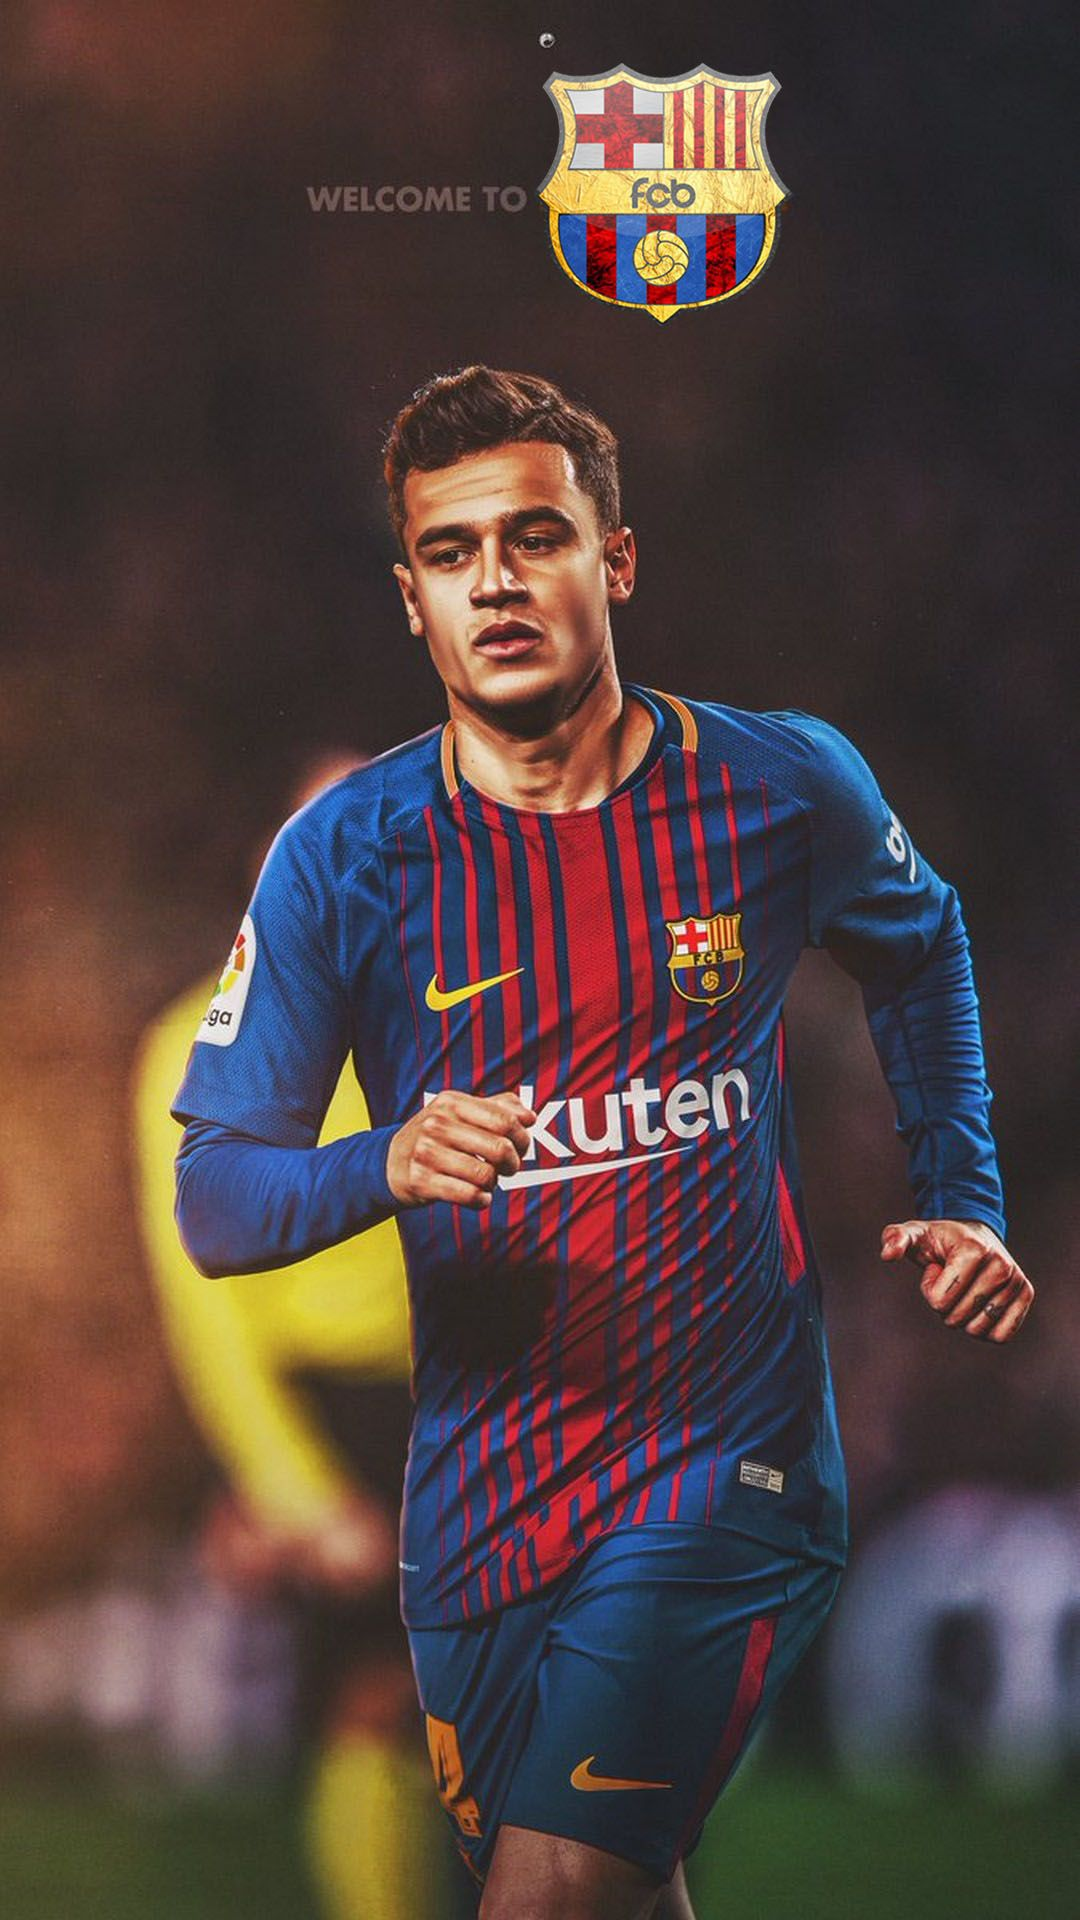 Barcelona Coutinho Wallpaper Android 2019 Android Wallpapers